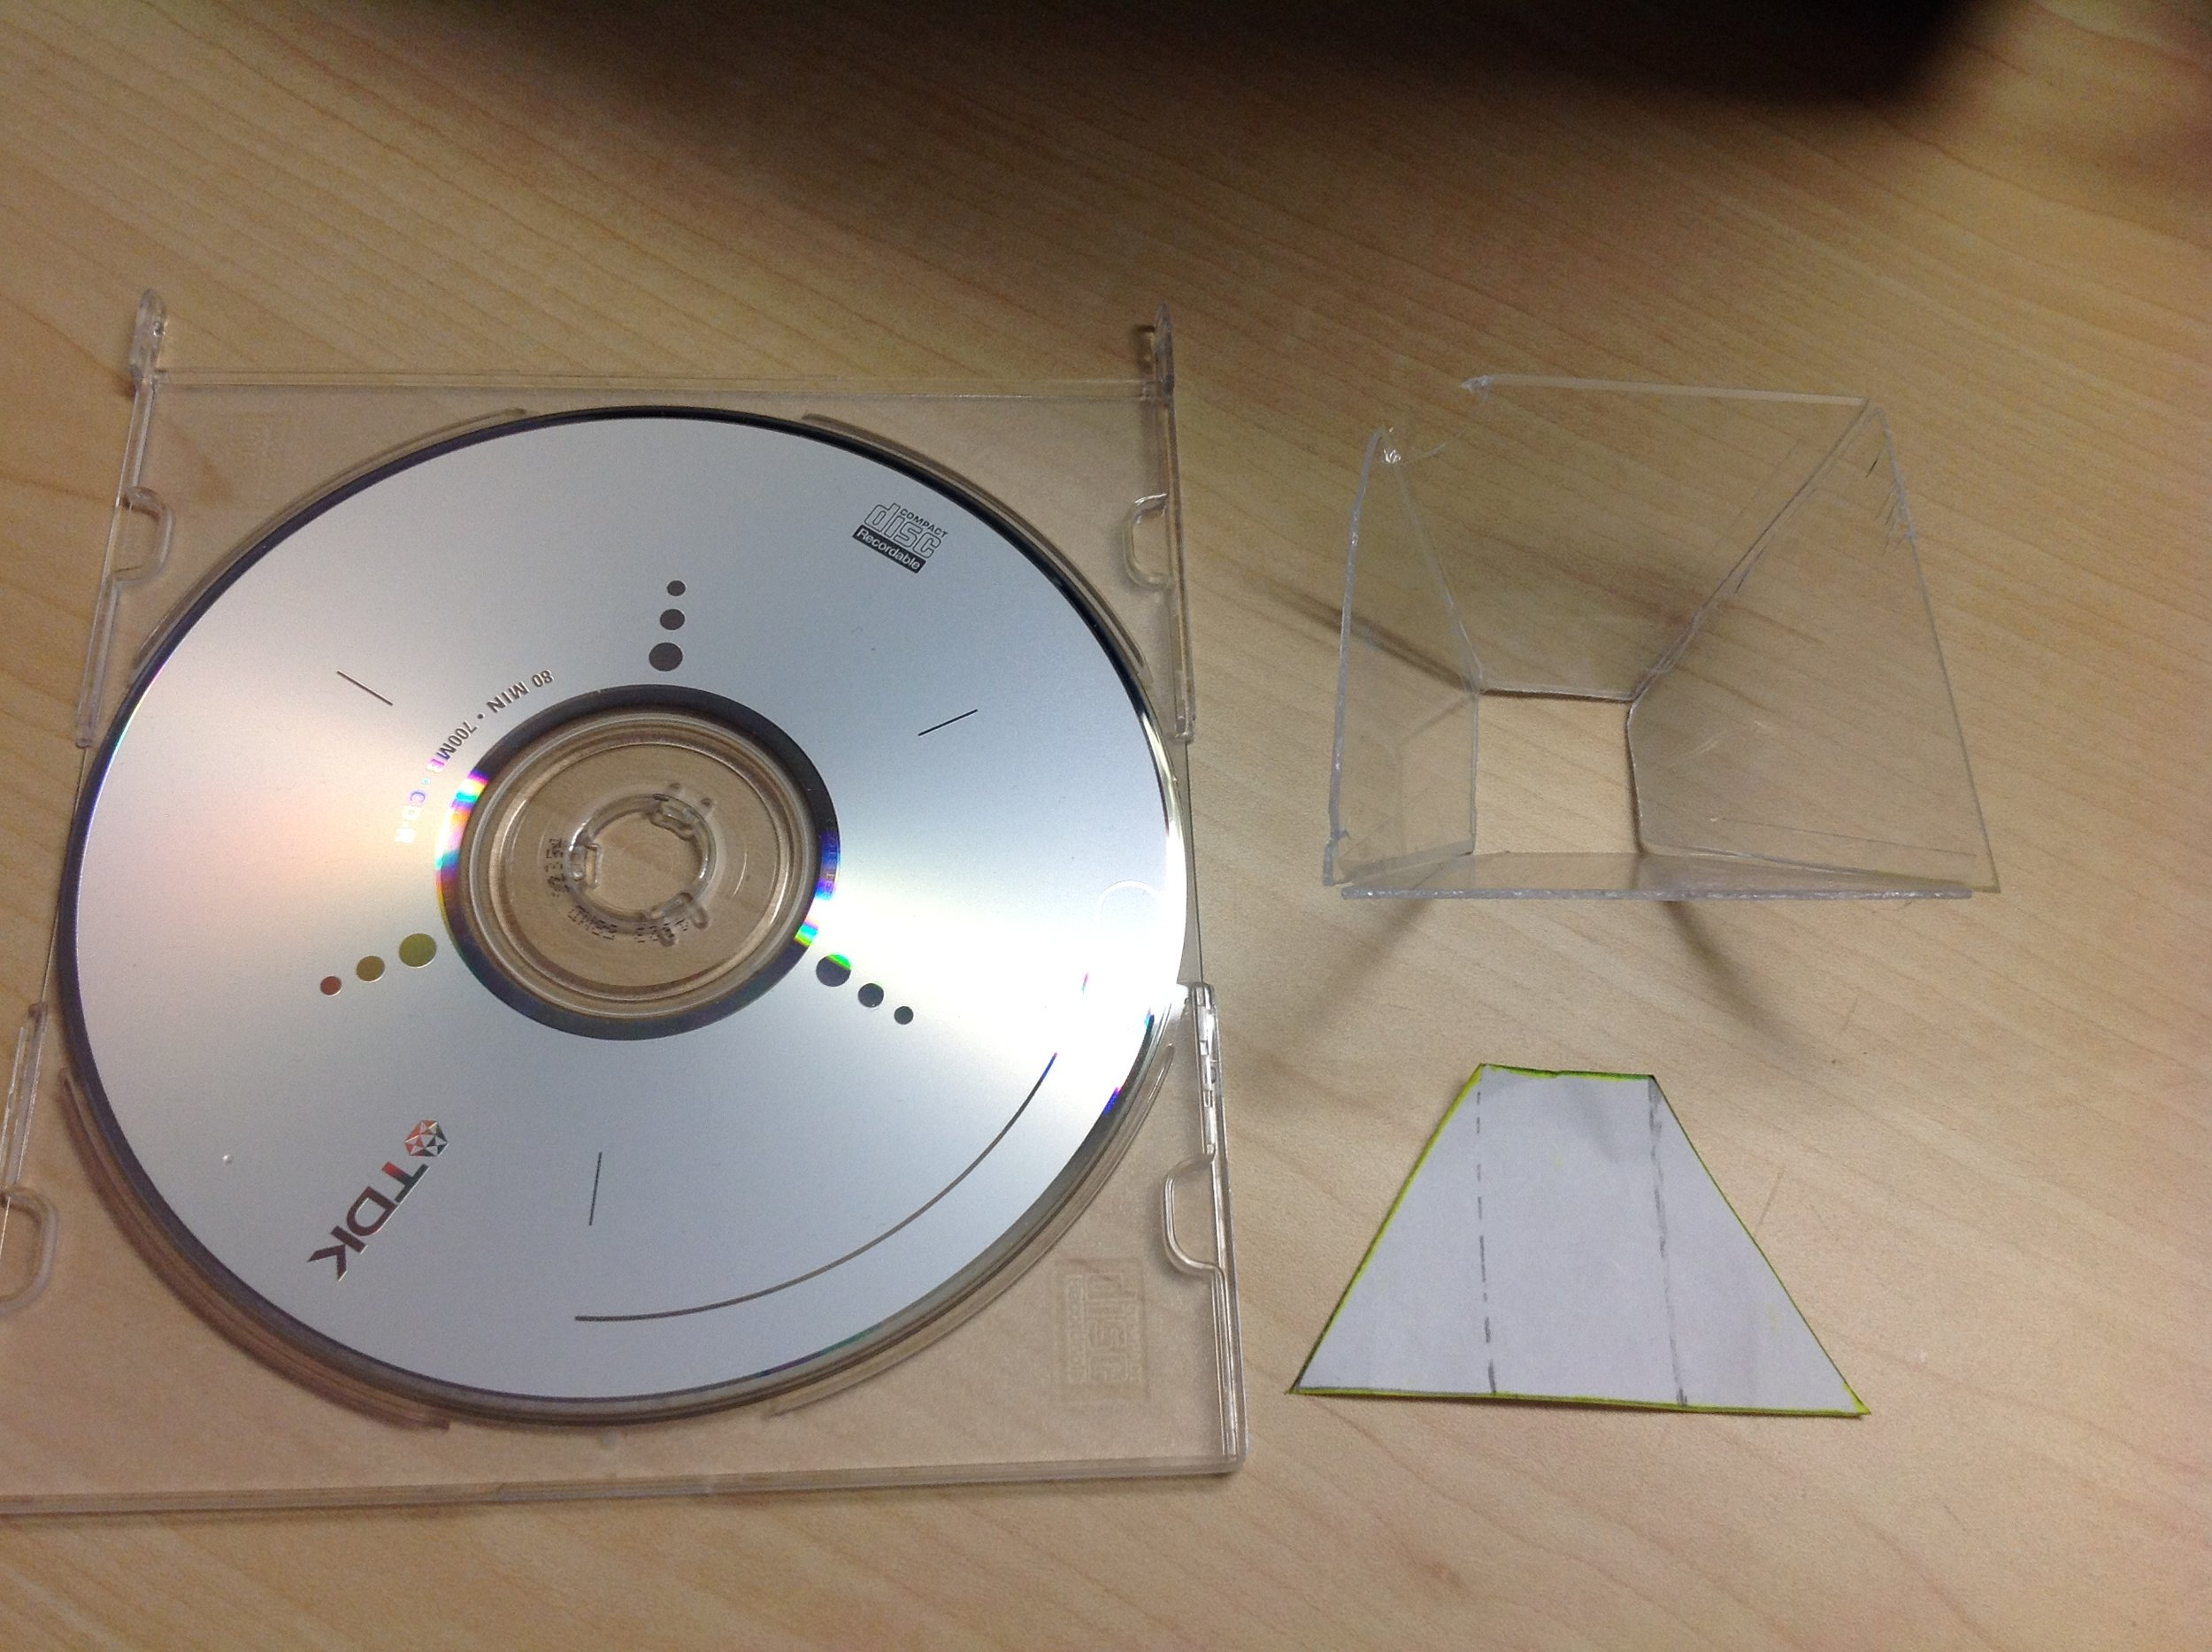 The disk case and the template I used to make the hologram.